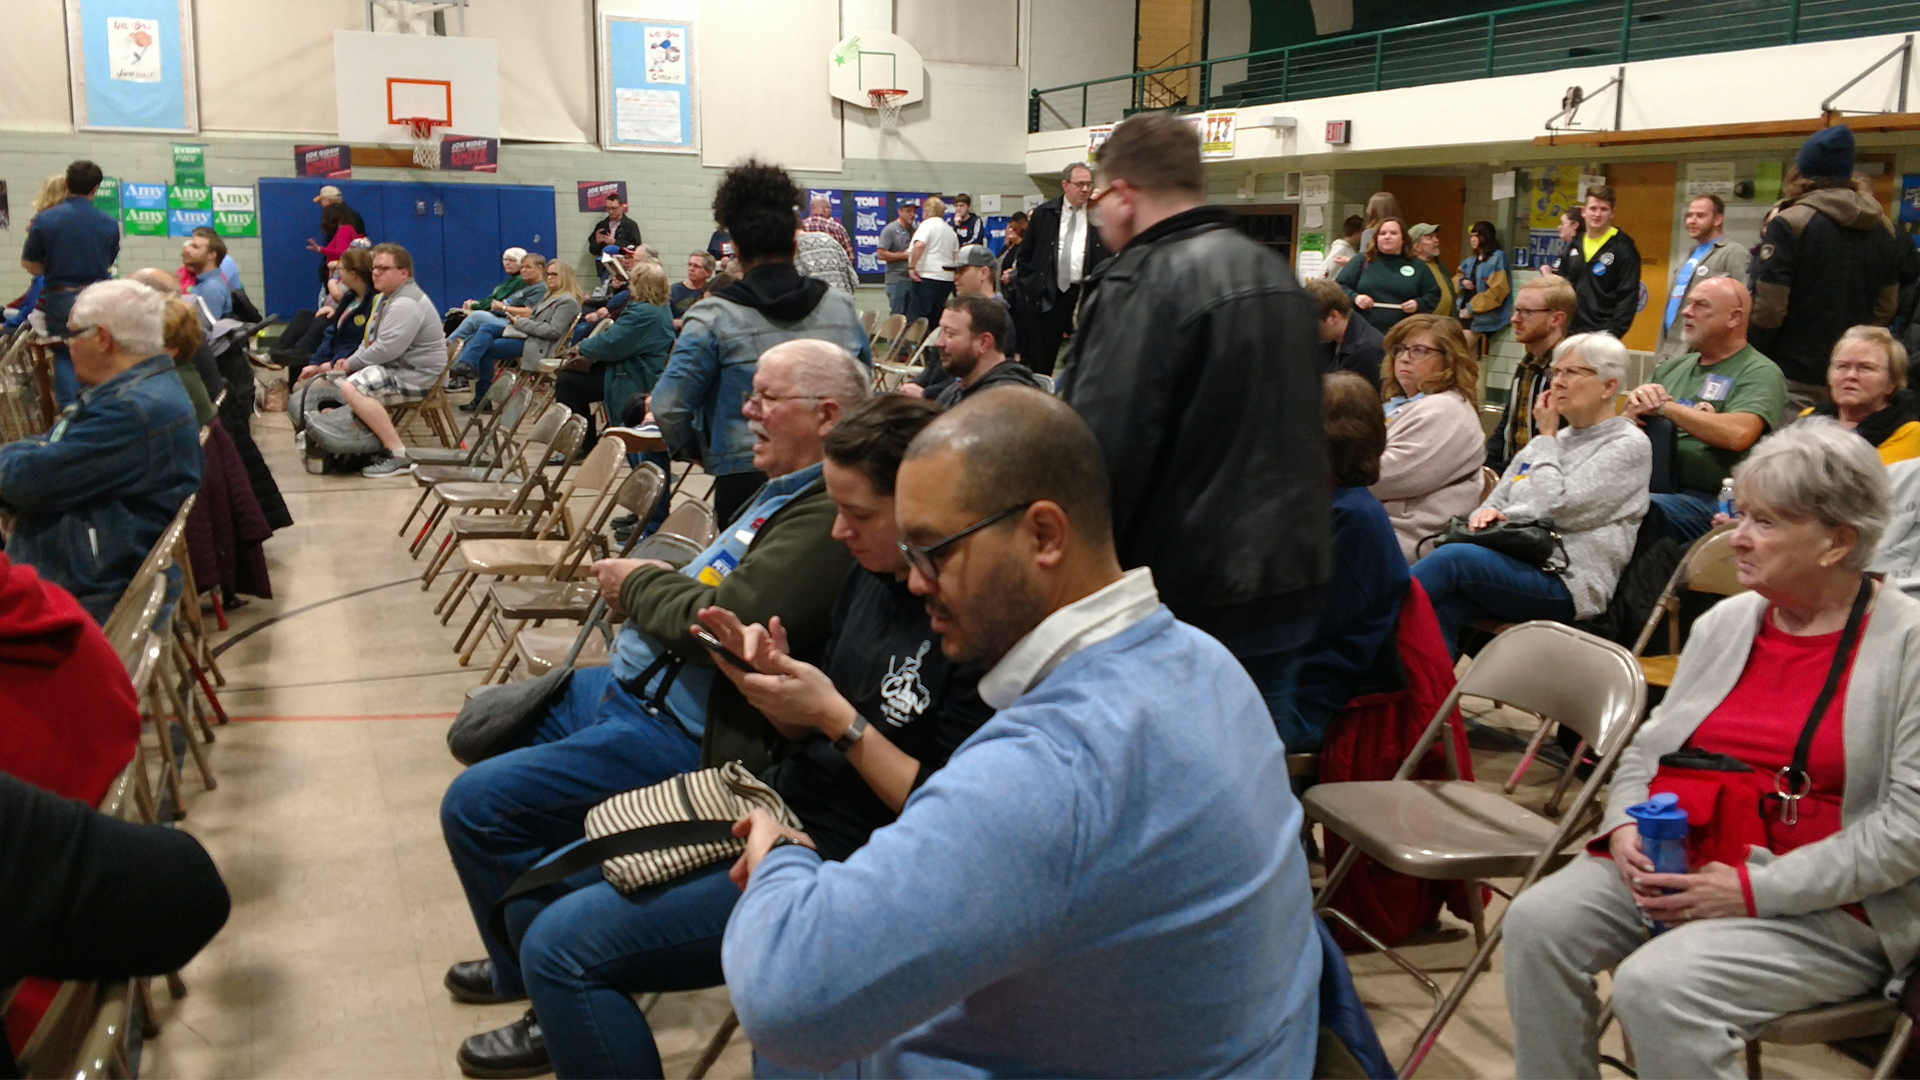 Democratic voters get ready to caucus at Adams Elementary School in Davenport, Iowa on January 3, 2020. (ourquadcities.com)